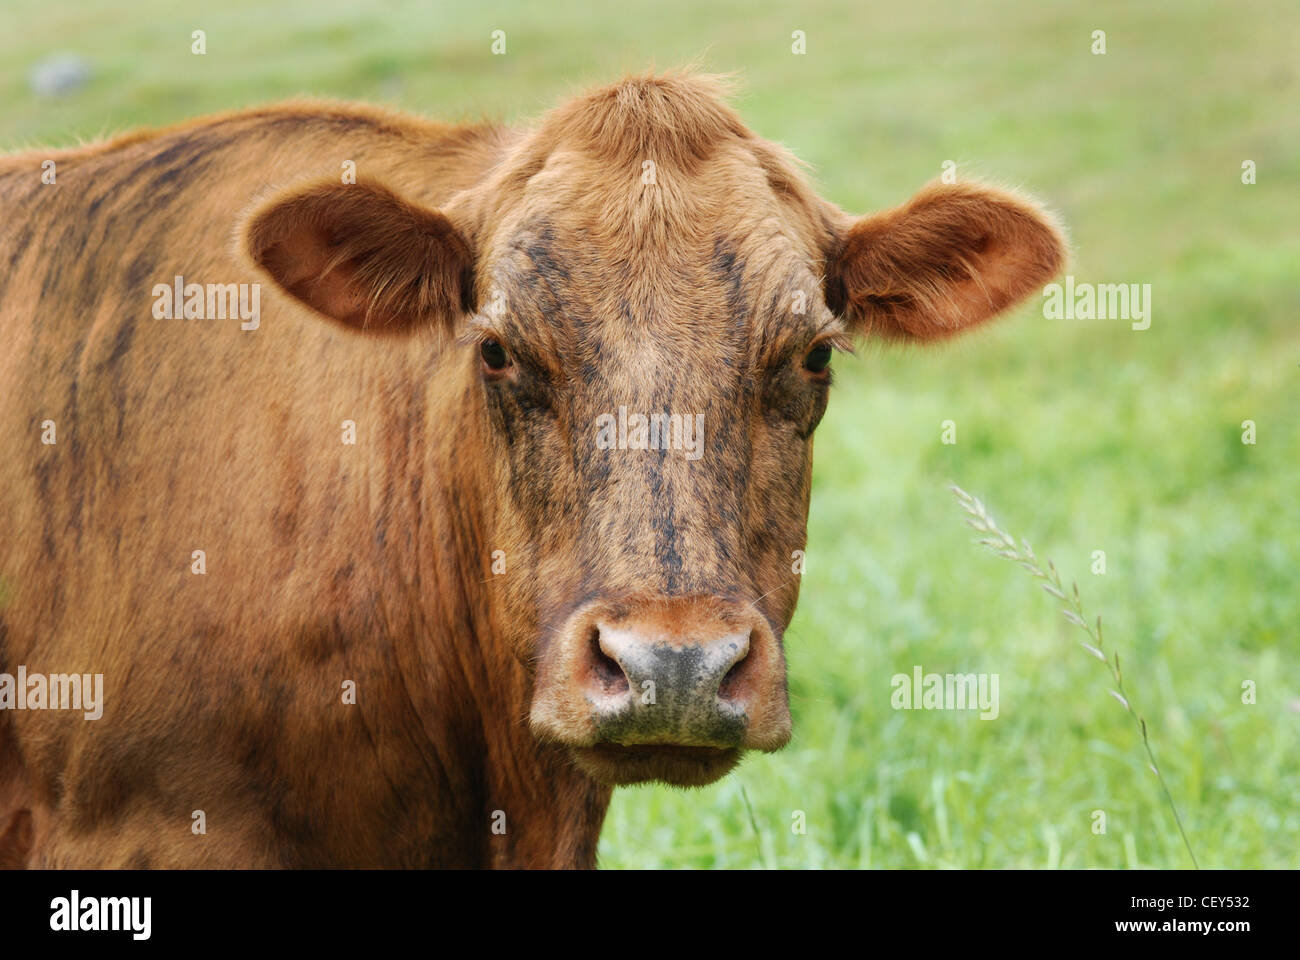 Brindle colored cow, close up in a green meadow - Stock Image